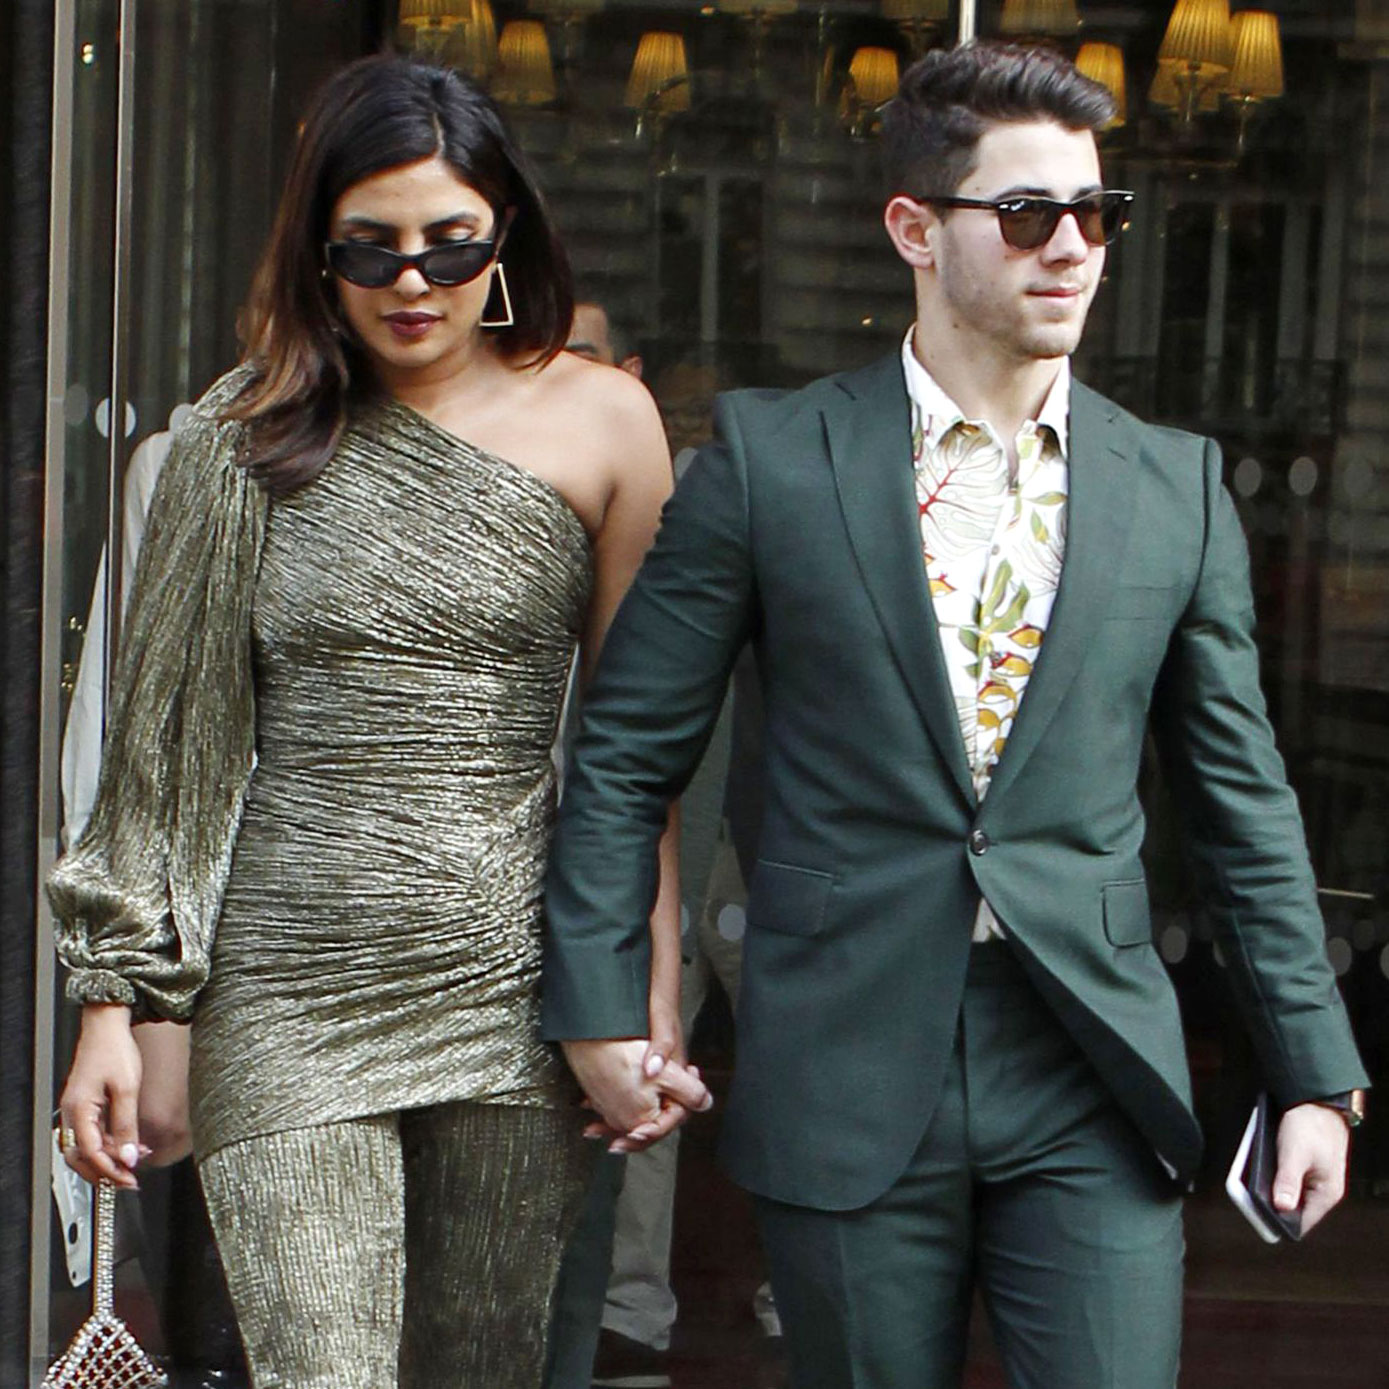 Priyanka Chopra Just Shut Down the Streets of Paris in These $68 Earrings